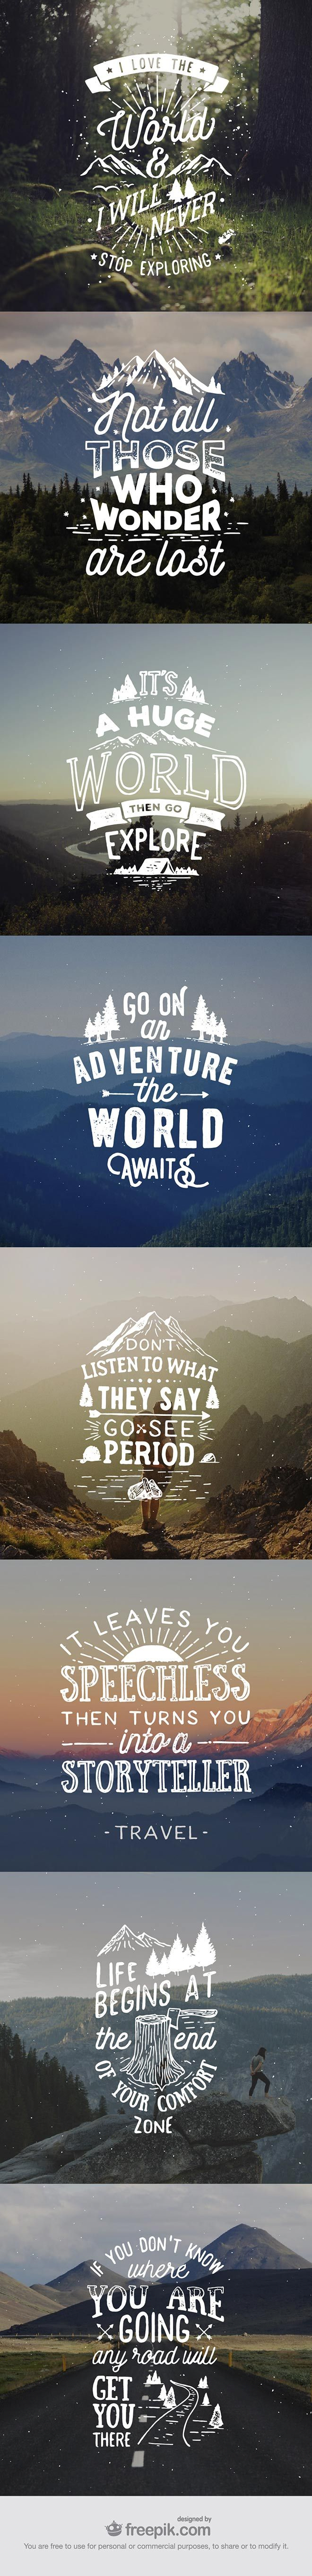 8 Hand Lettered Travel Quotes by @spoongraphics